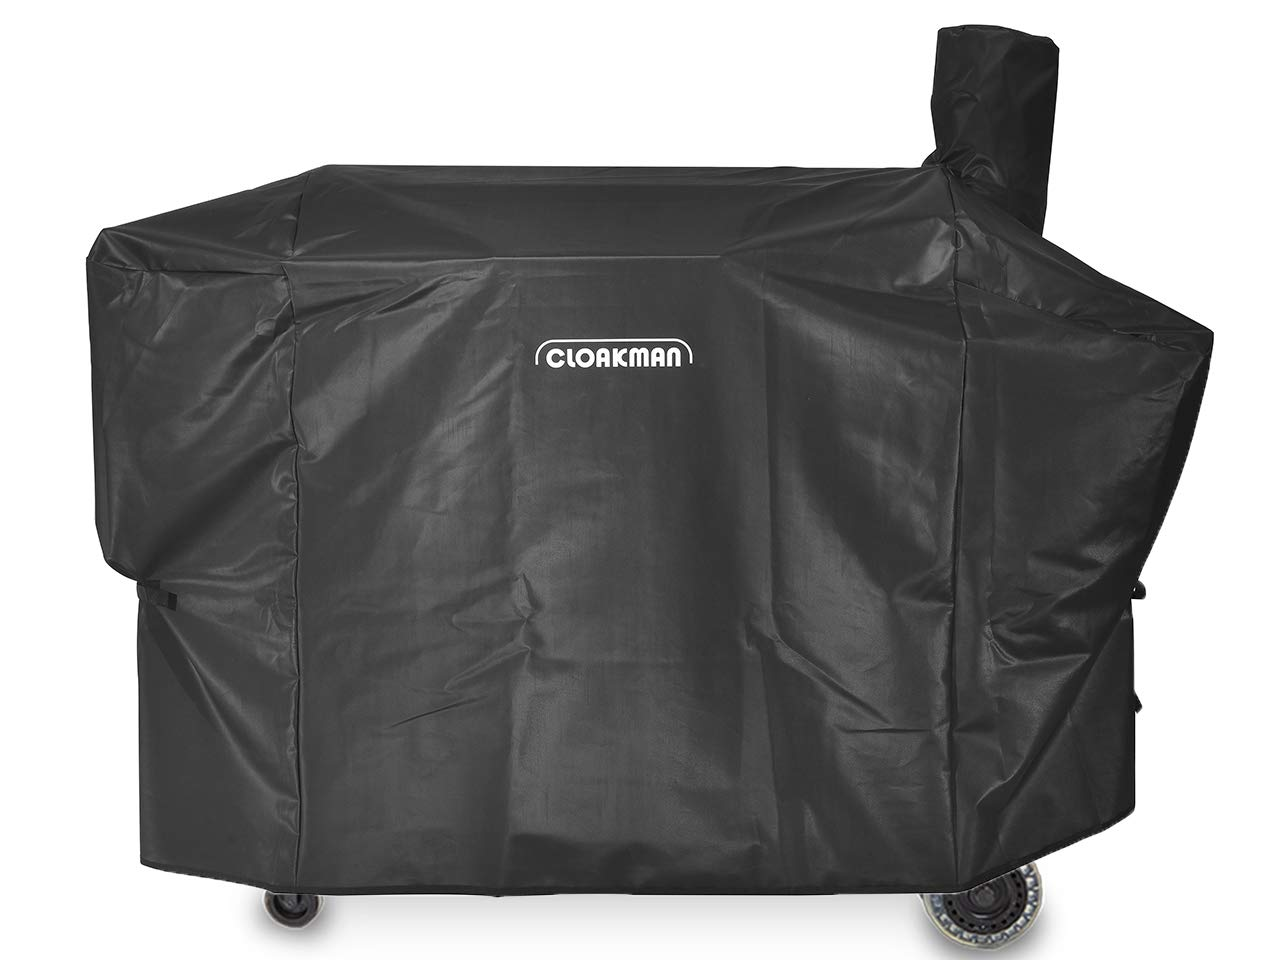 Cloakman Premium Heavy-Duty Grill Cover for Pit Boss Rancher XL/Austin XL/1000S/1100 Pro Wood Pellet Grill by Cloakman